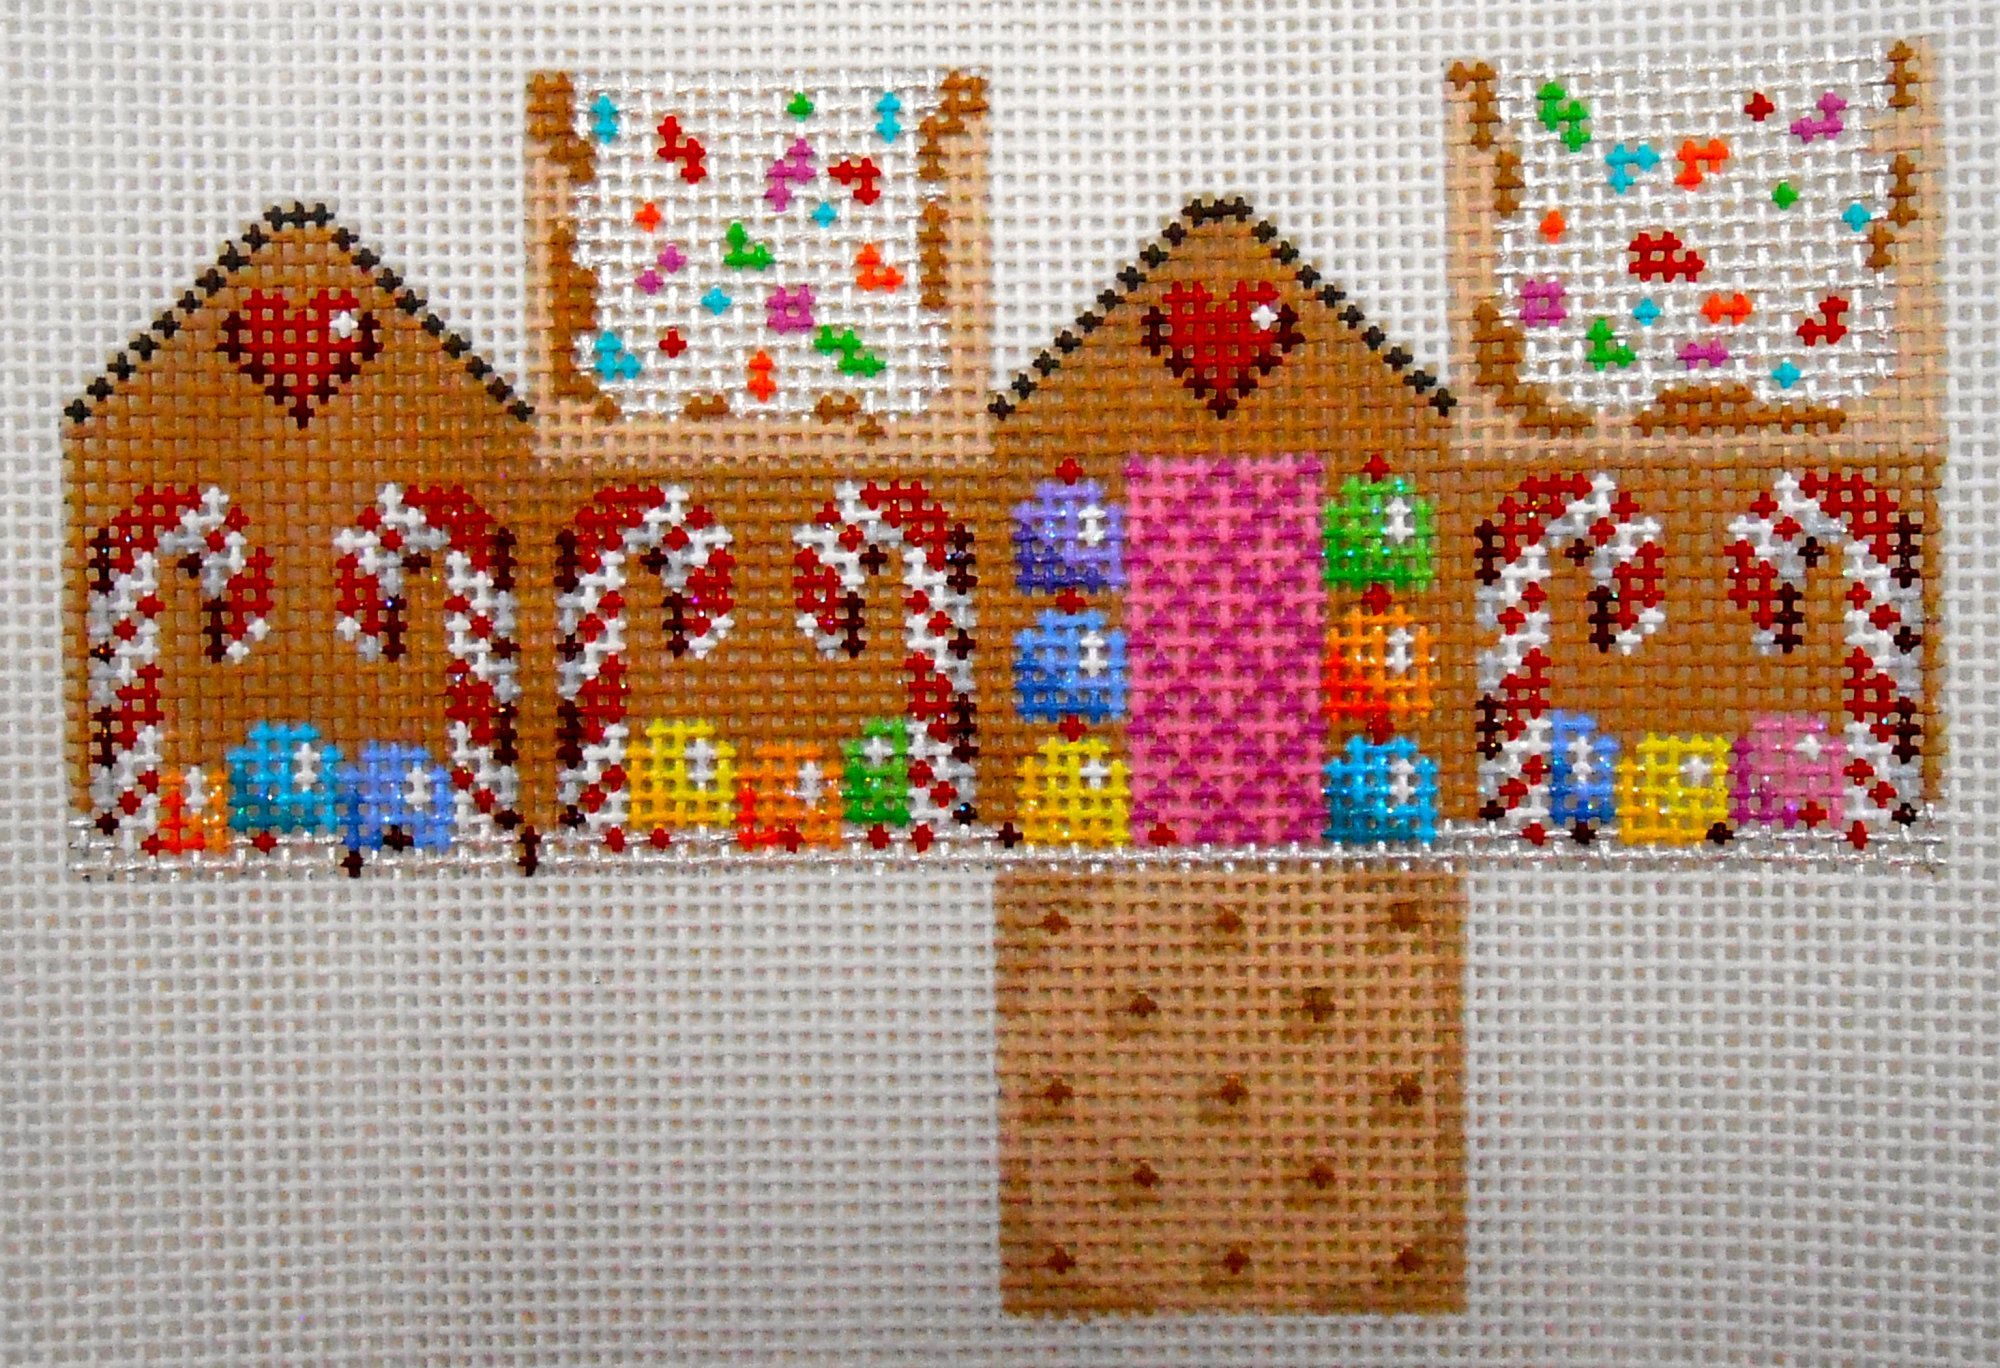 Midi Cottage with Gumdrops & Candy Canes